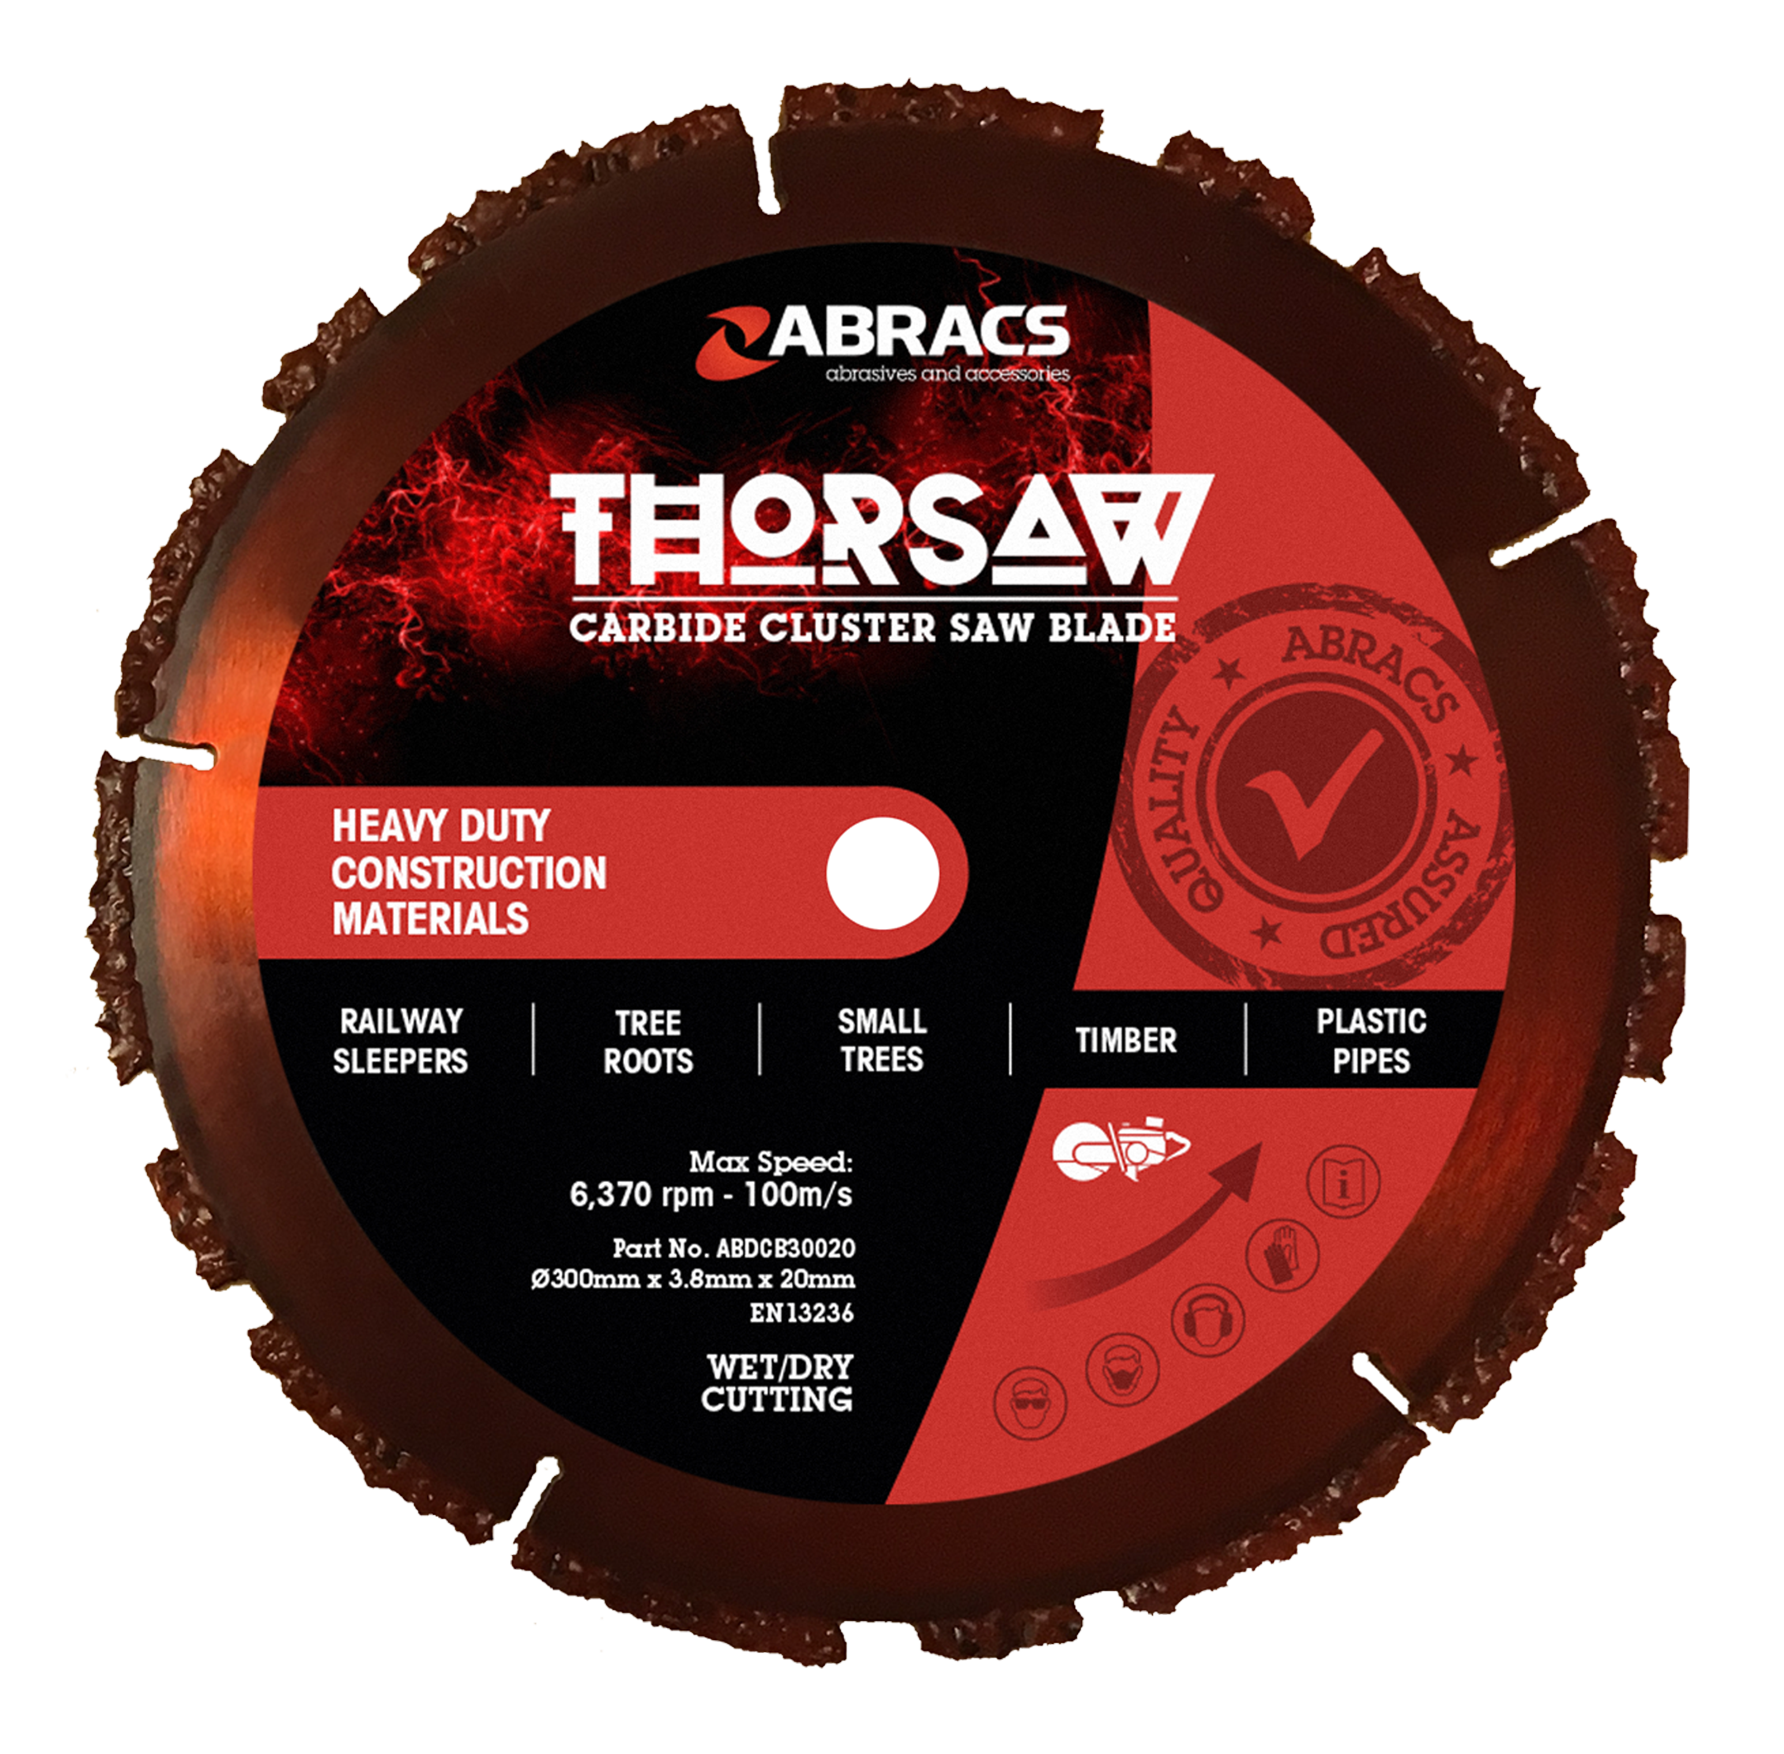 Thorsaw Carbide Cluster Blade